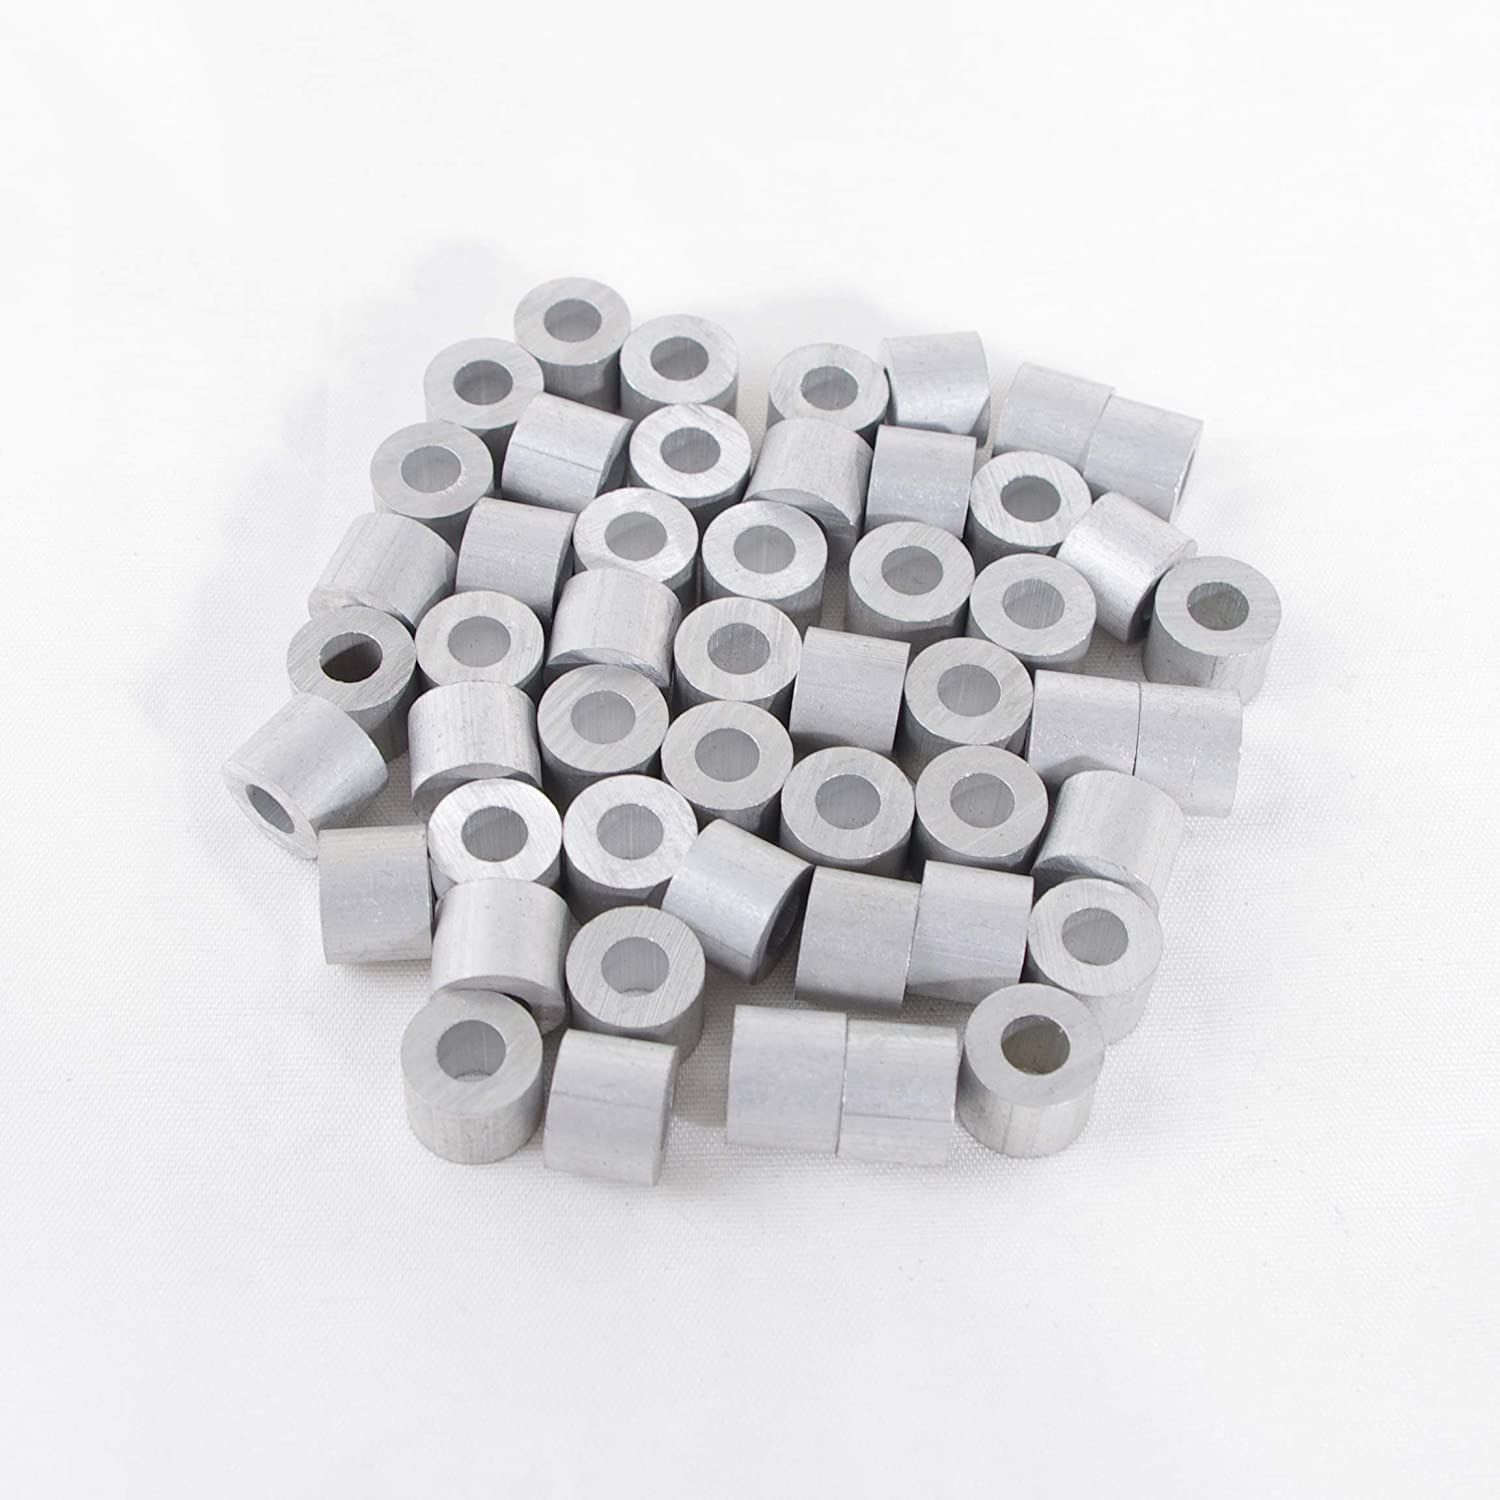 Details about  /50Pcs Aluminum  Alloy Stop Sleeve Clips for Fixing Transporting Wire Rope Cable